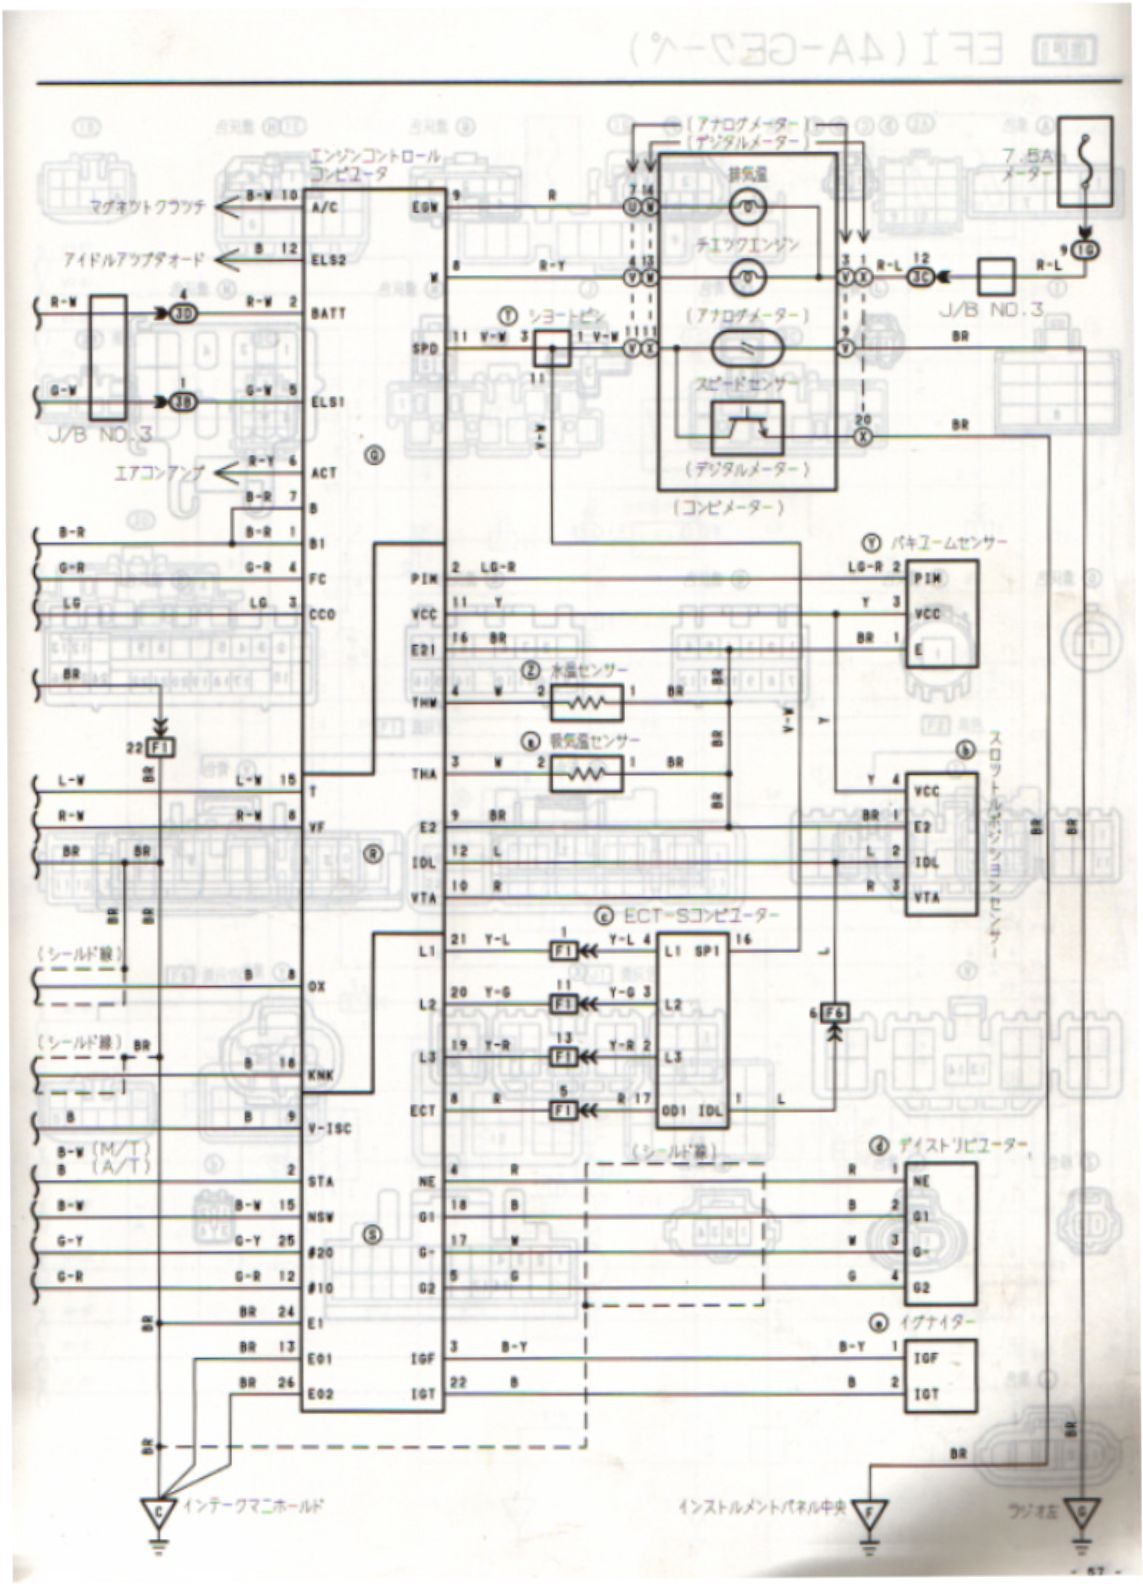 Rj12 Socket Wiring Diagram Australia